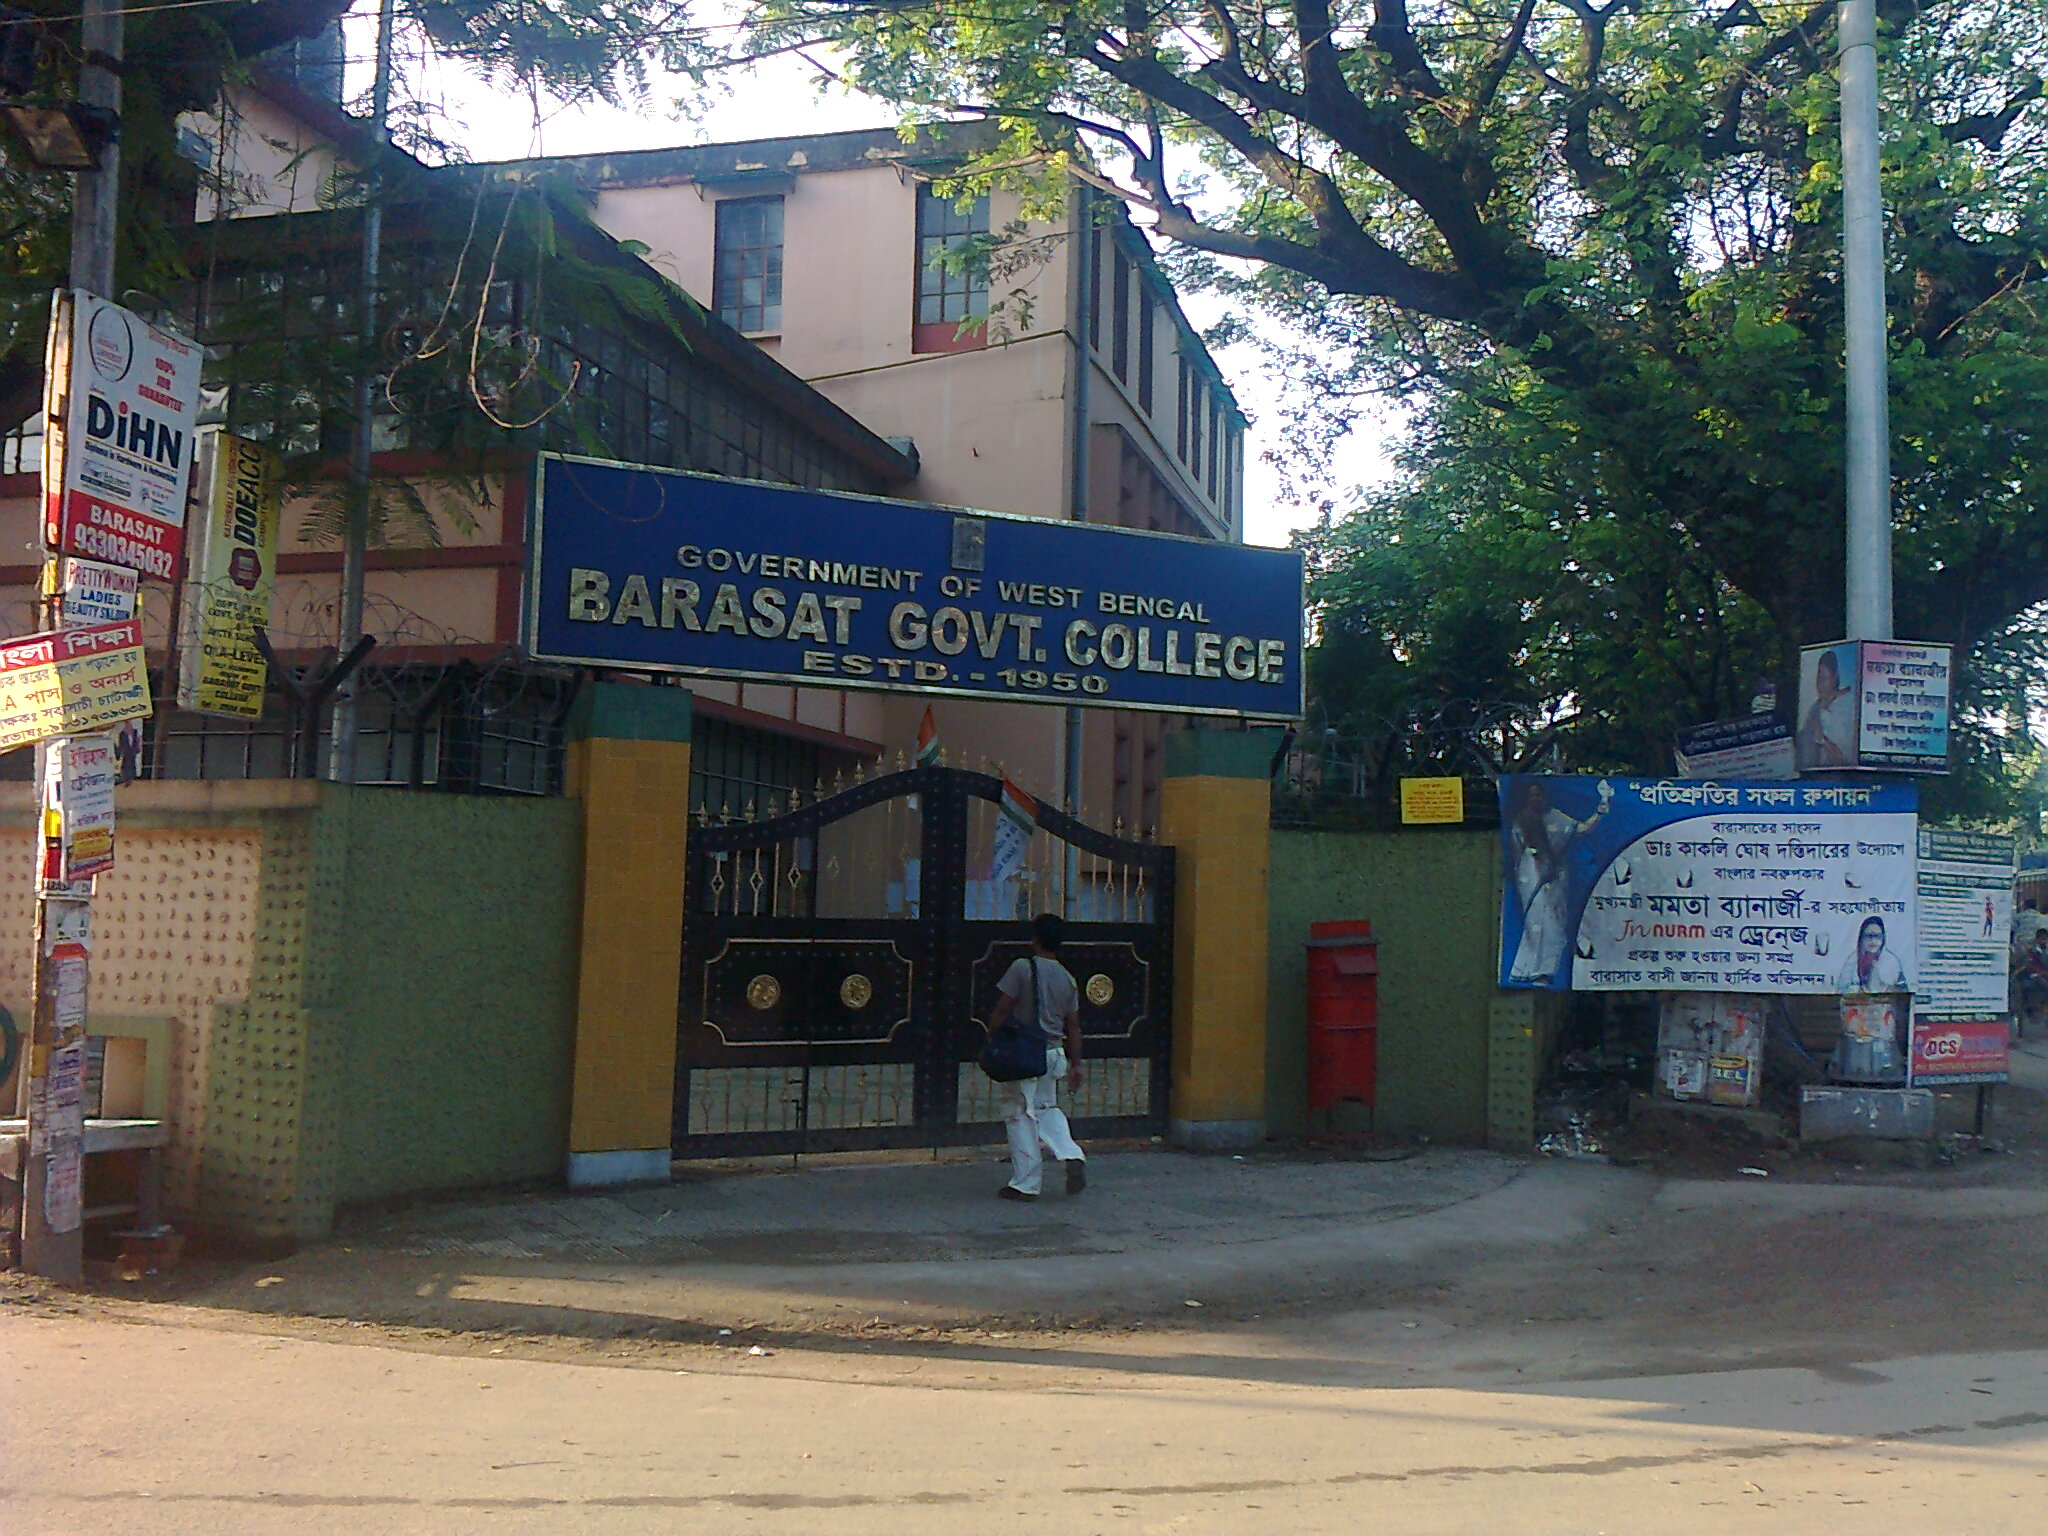 3%2f31%2fbarasat government college